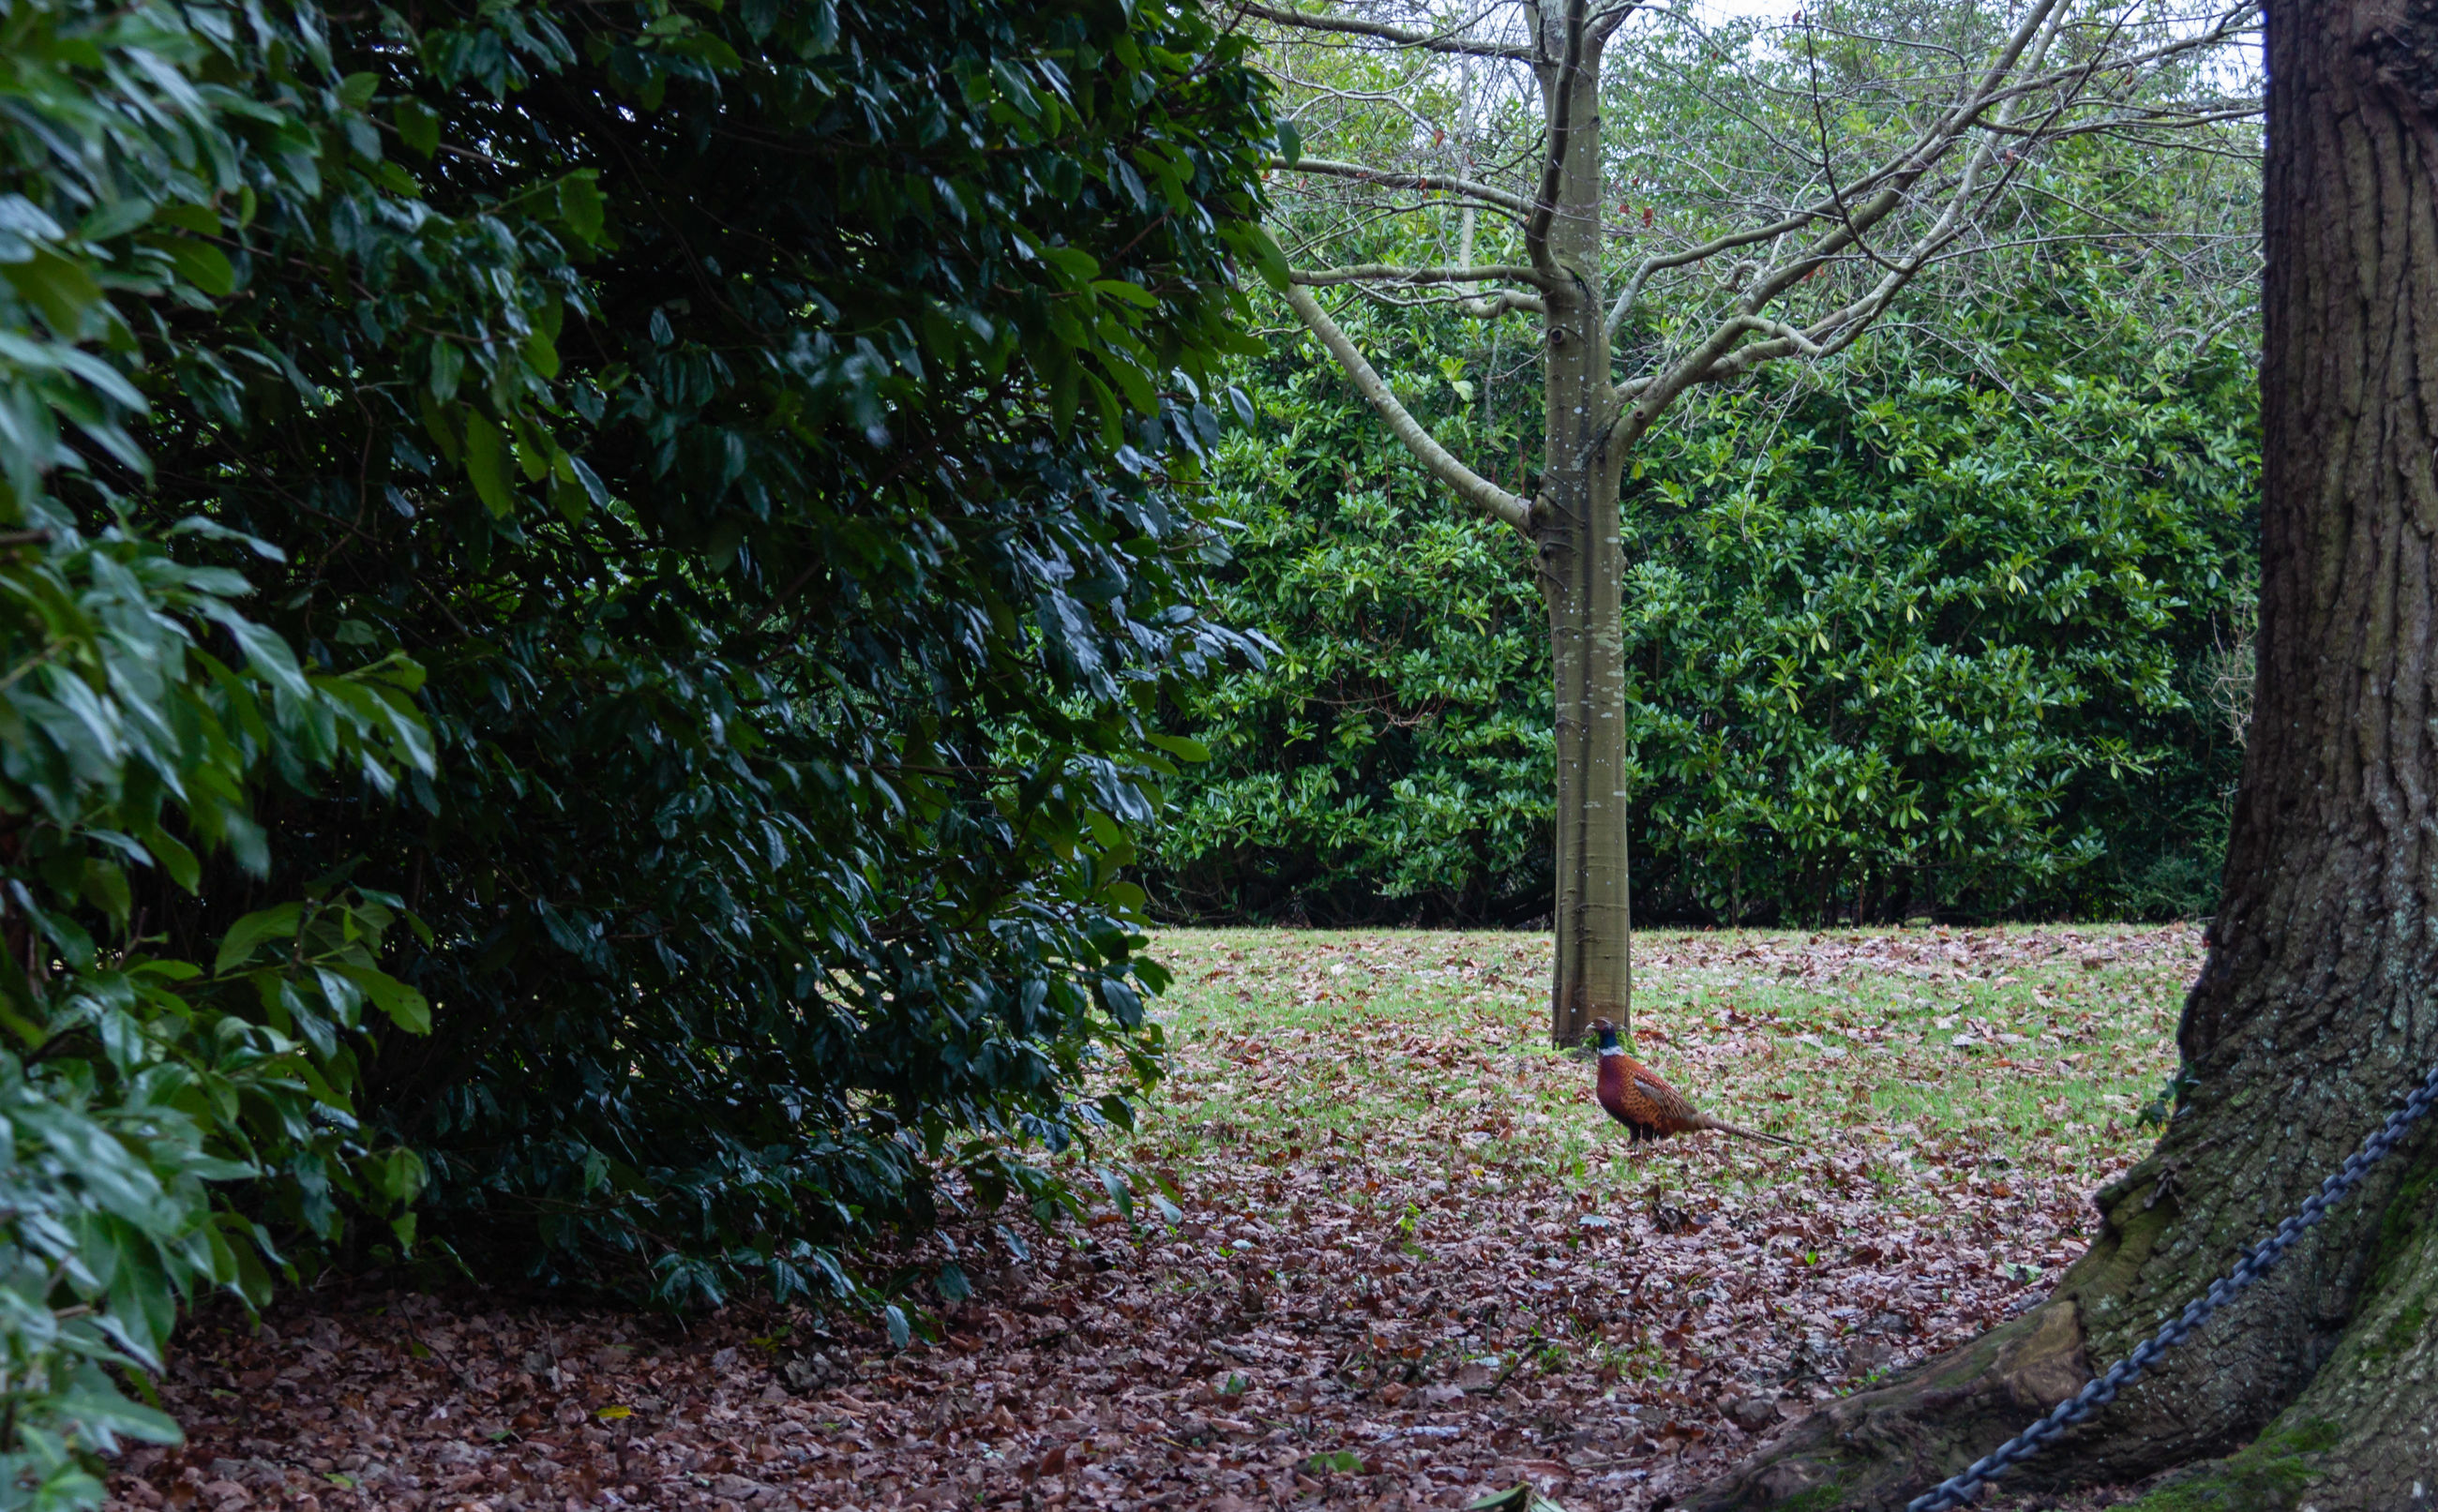 plant, tree, growth, nature, tranquility, green color, land, no people, beauty in nature, forest, trunk, tree trunk, day, scenics - nature, plant part, leaf, landscape, tranquil scene, foliage, outdoors, woodland, flowerbed, gardening, ornamental garden